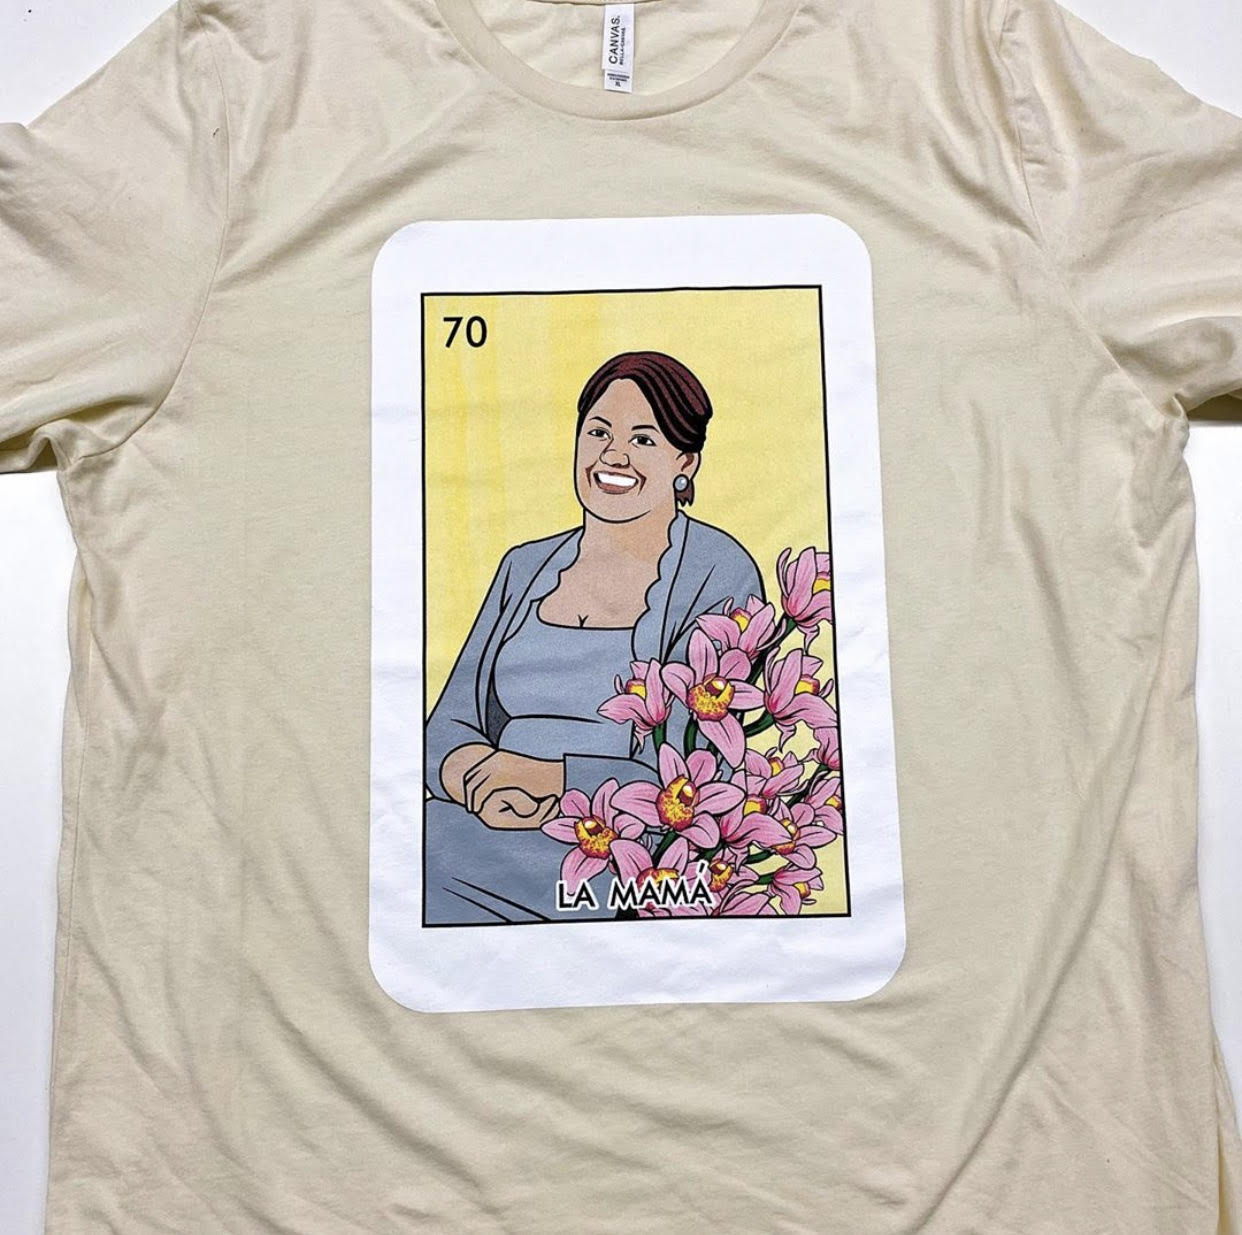 loteria shirt with water based screen printing